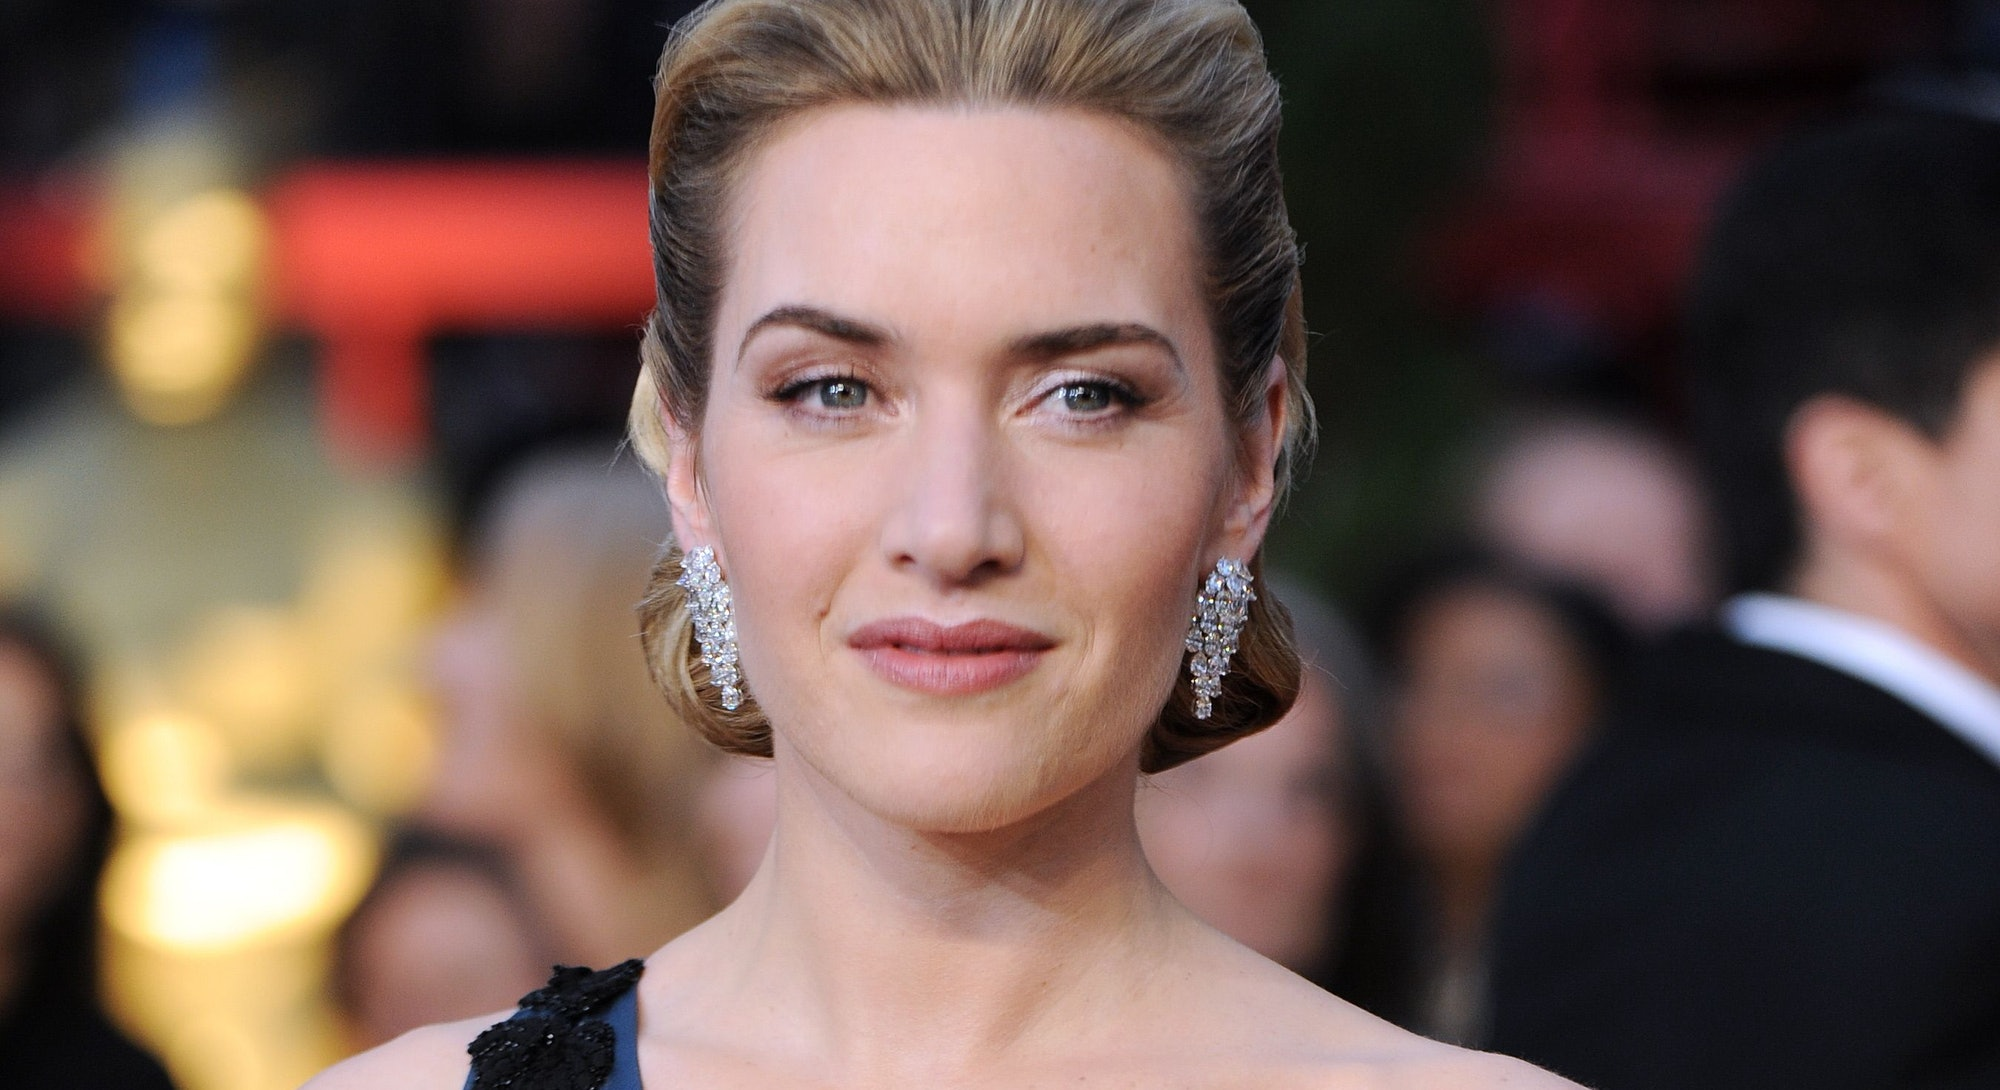 Actress Kate Winslet arrives at the 81st Academy Awards at the Kodak Theater in Hollywood, Californi...